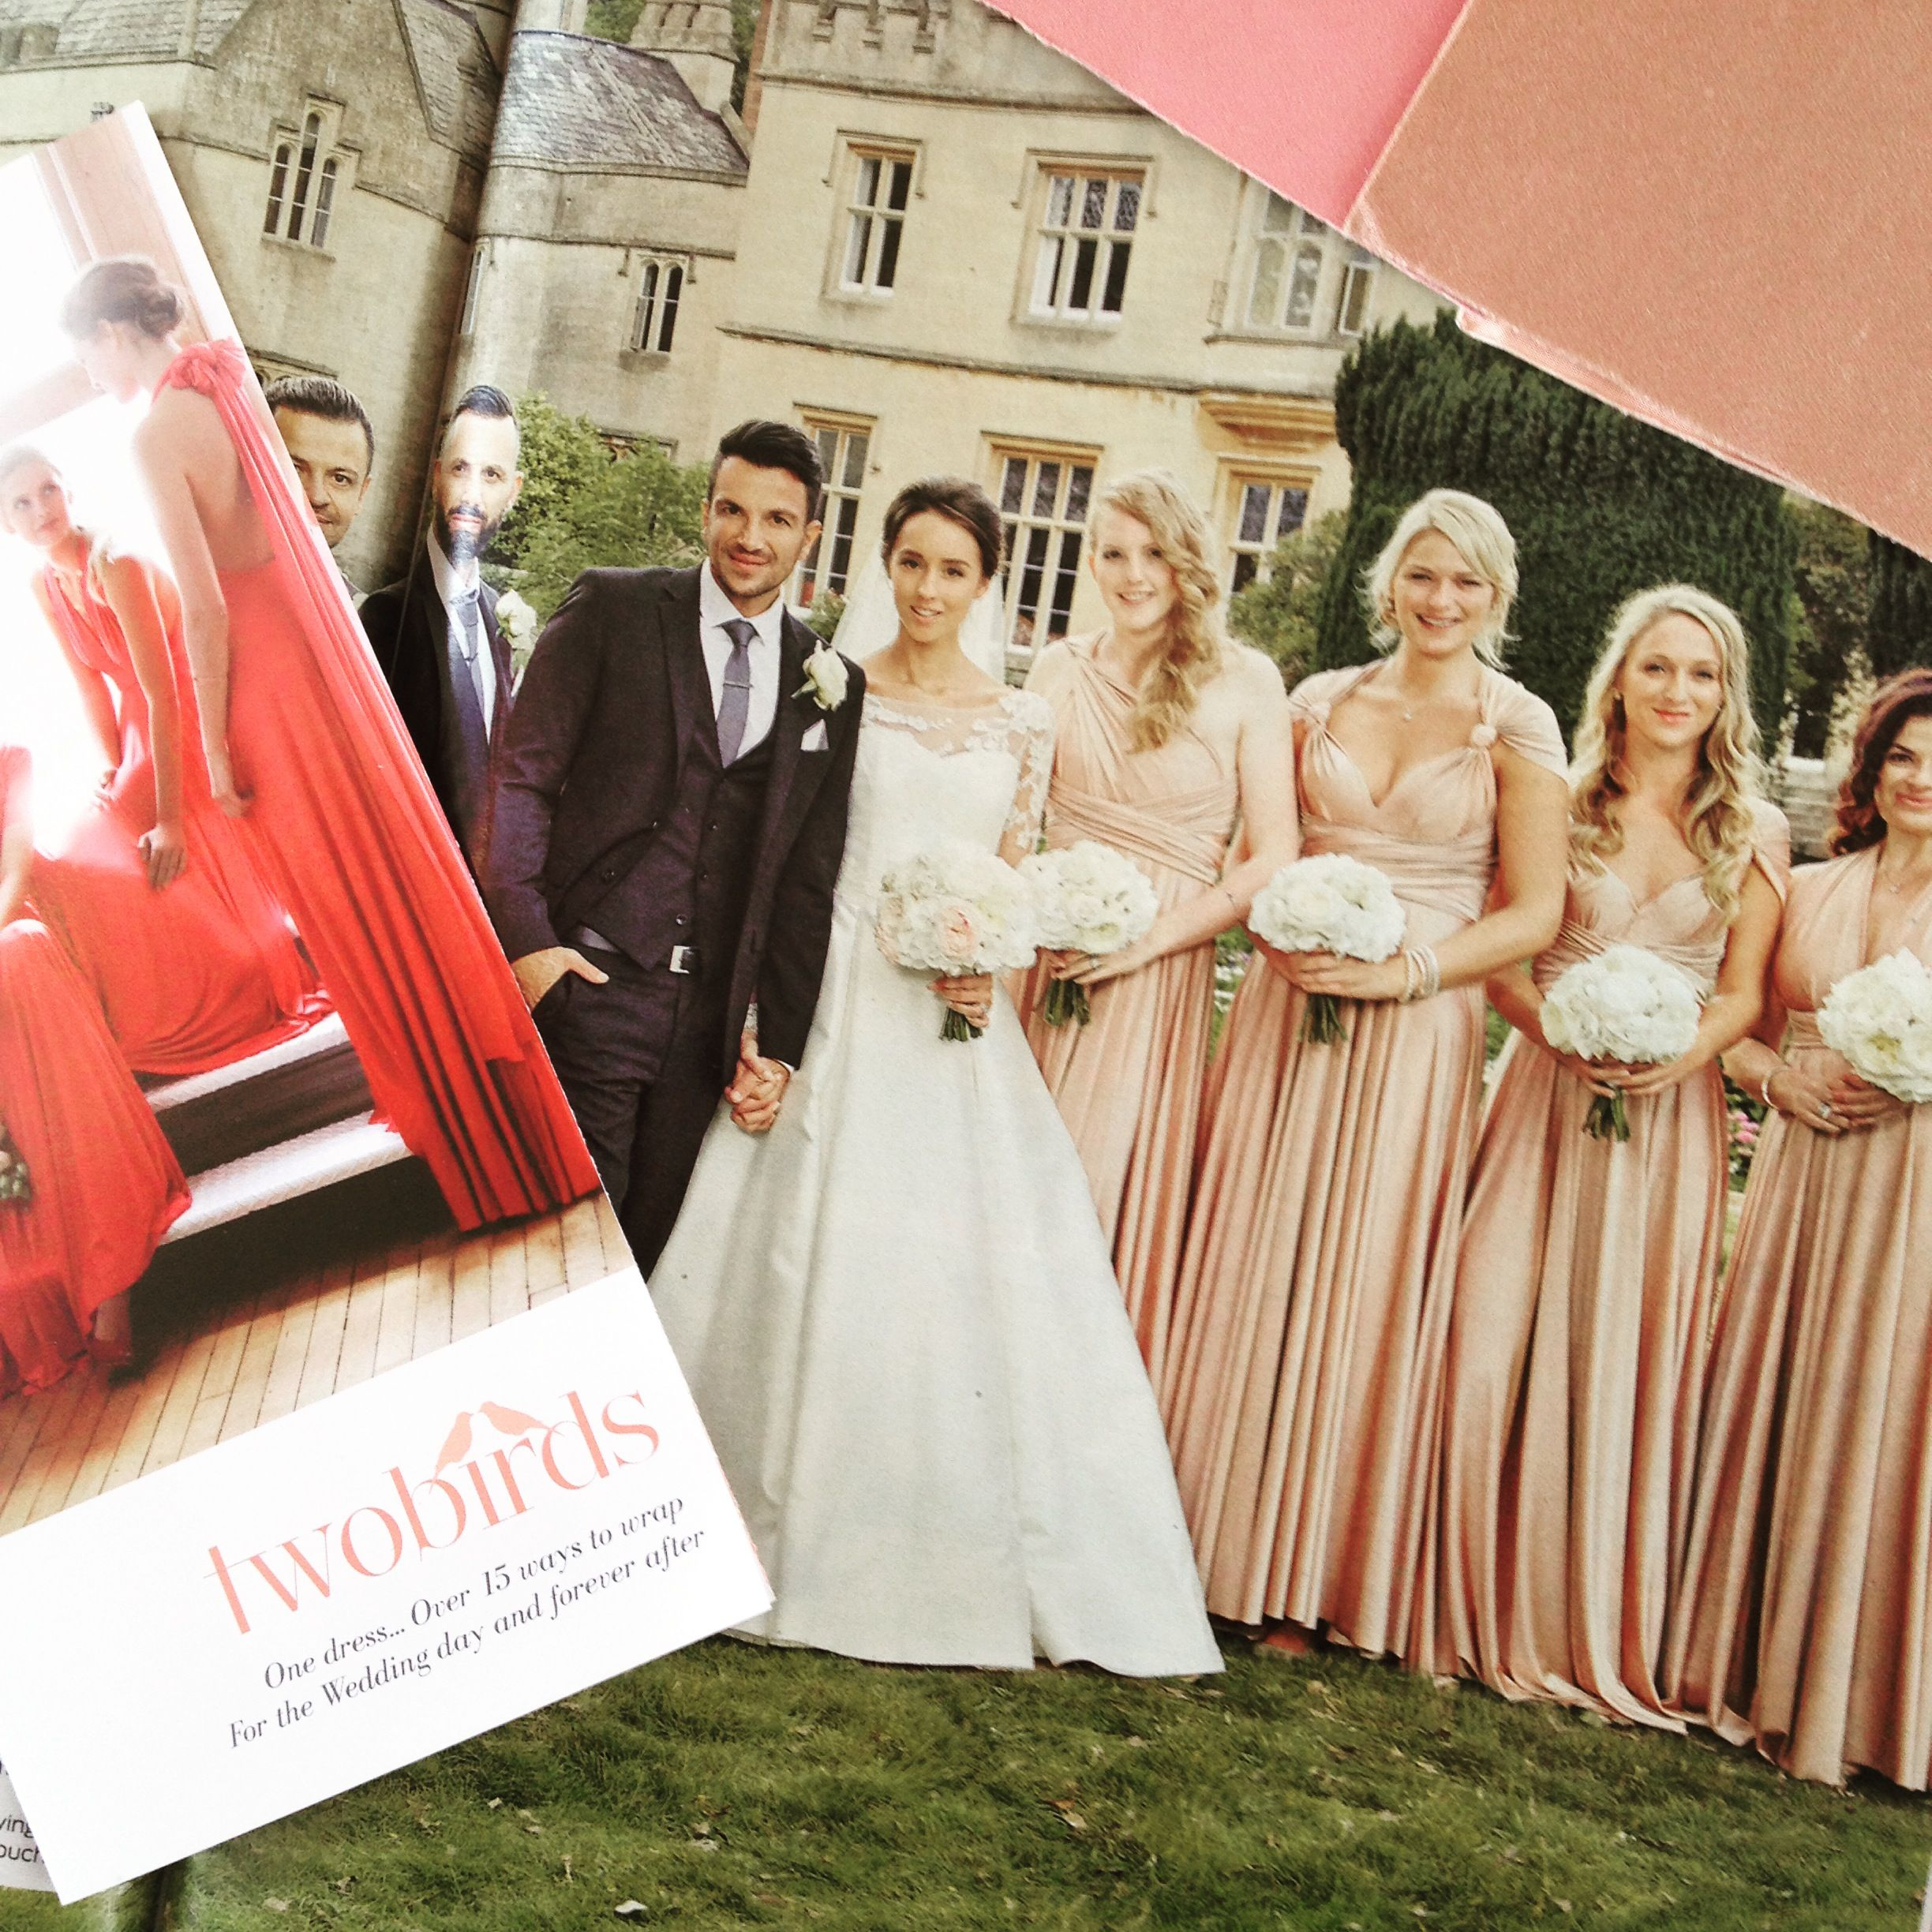 Peter andre emily macdonaghs bridesmaids wore rosewater peter andre emily macdonaghs bridesmaids wore rosewater twobirds ballgowns multiway convertible wrap dresses ombrellifo Image collections